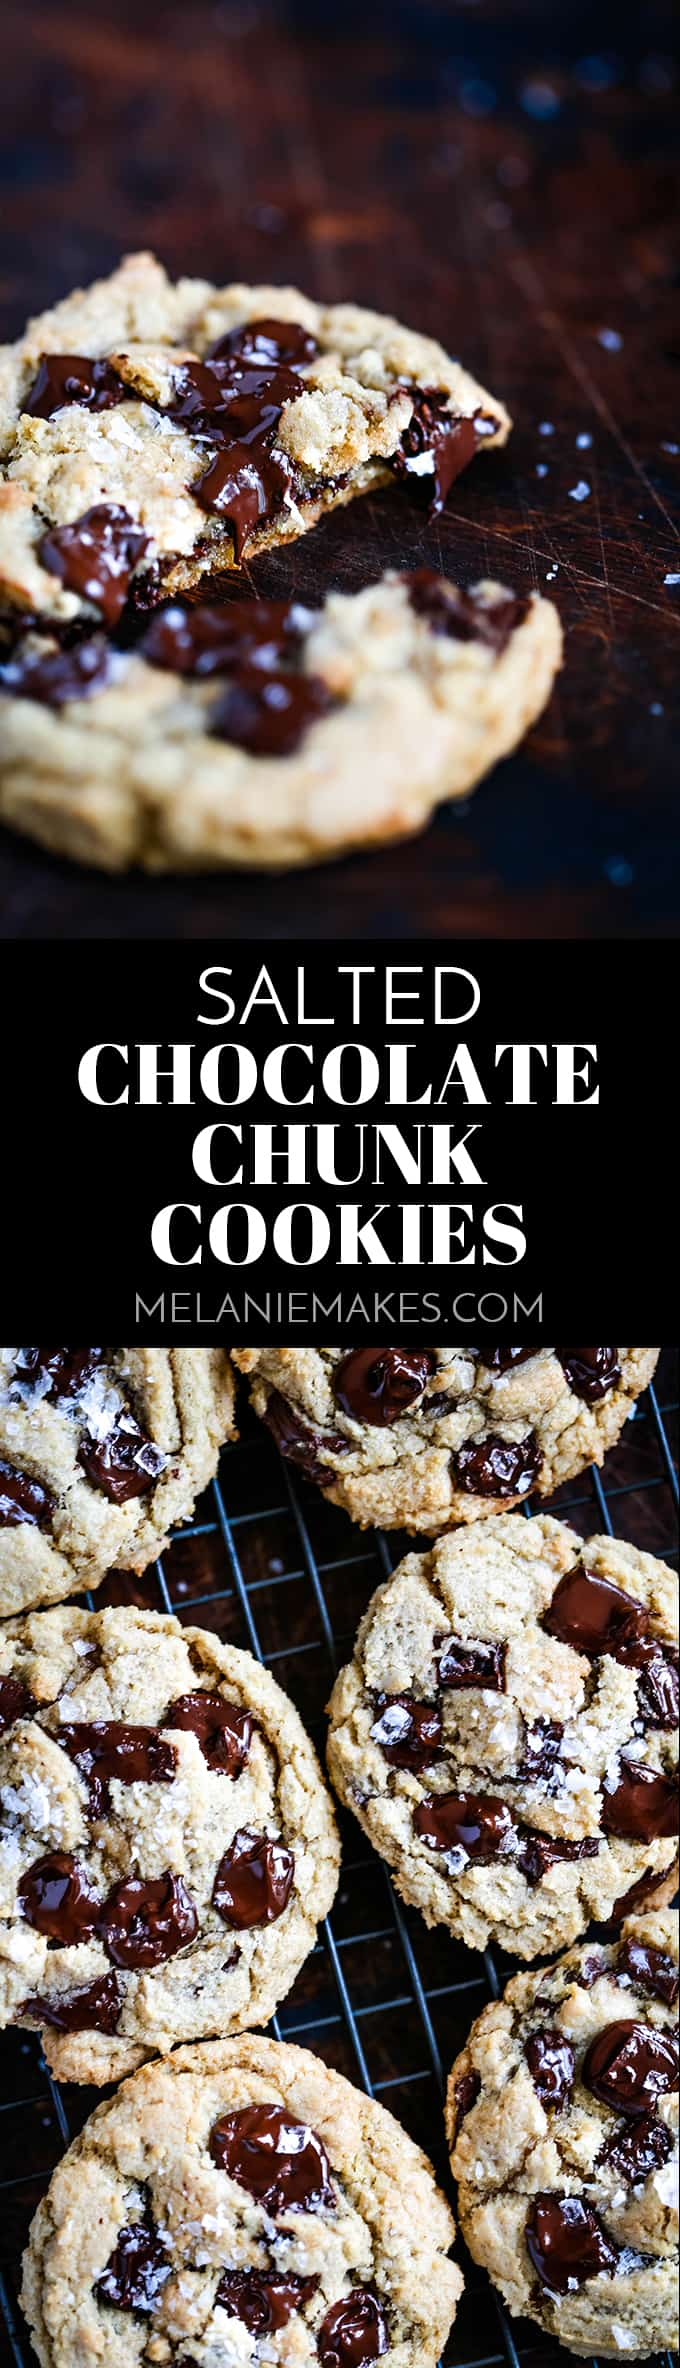 Studded with dark chocolate chunks and sprinkled with sea salt flakes, these soft and chewy Salted Chocolate Chunk Cookies are insanely delicious. #cookies #chocolate #salt #cookierecipes #desserts #easyrecipe